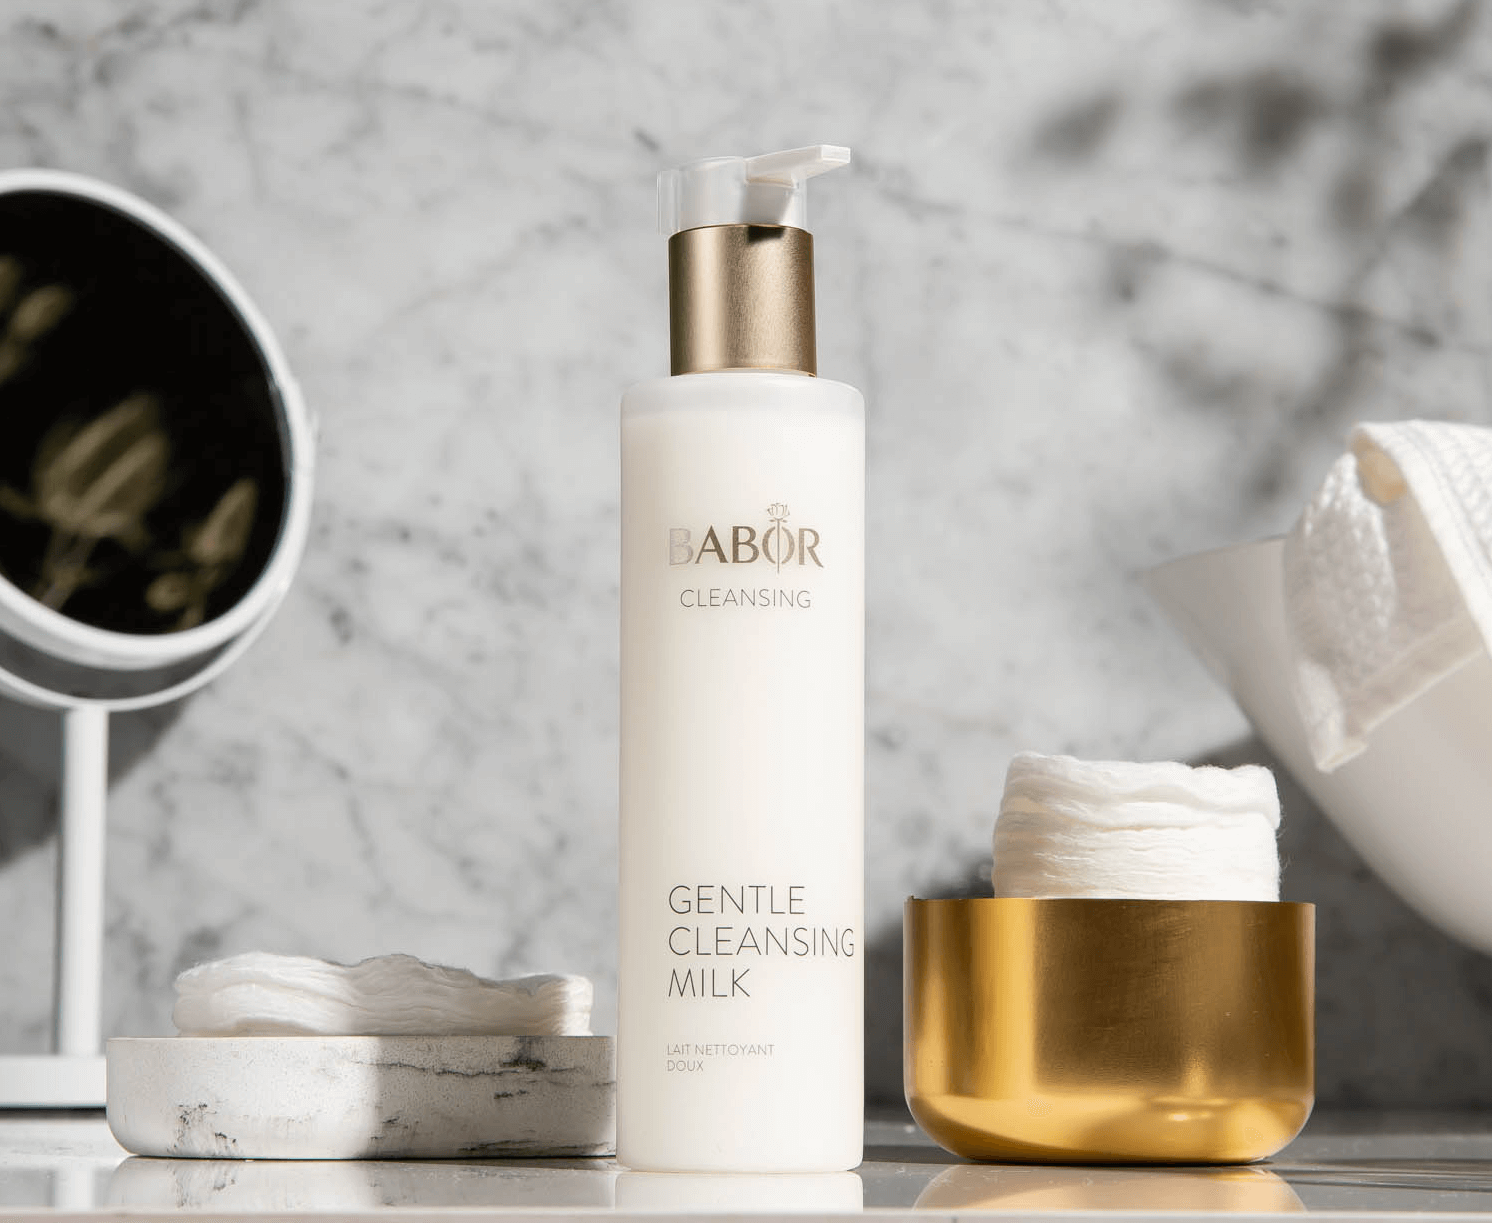 BABOR Gentle Cleansing Milk